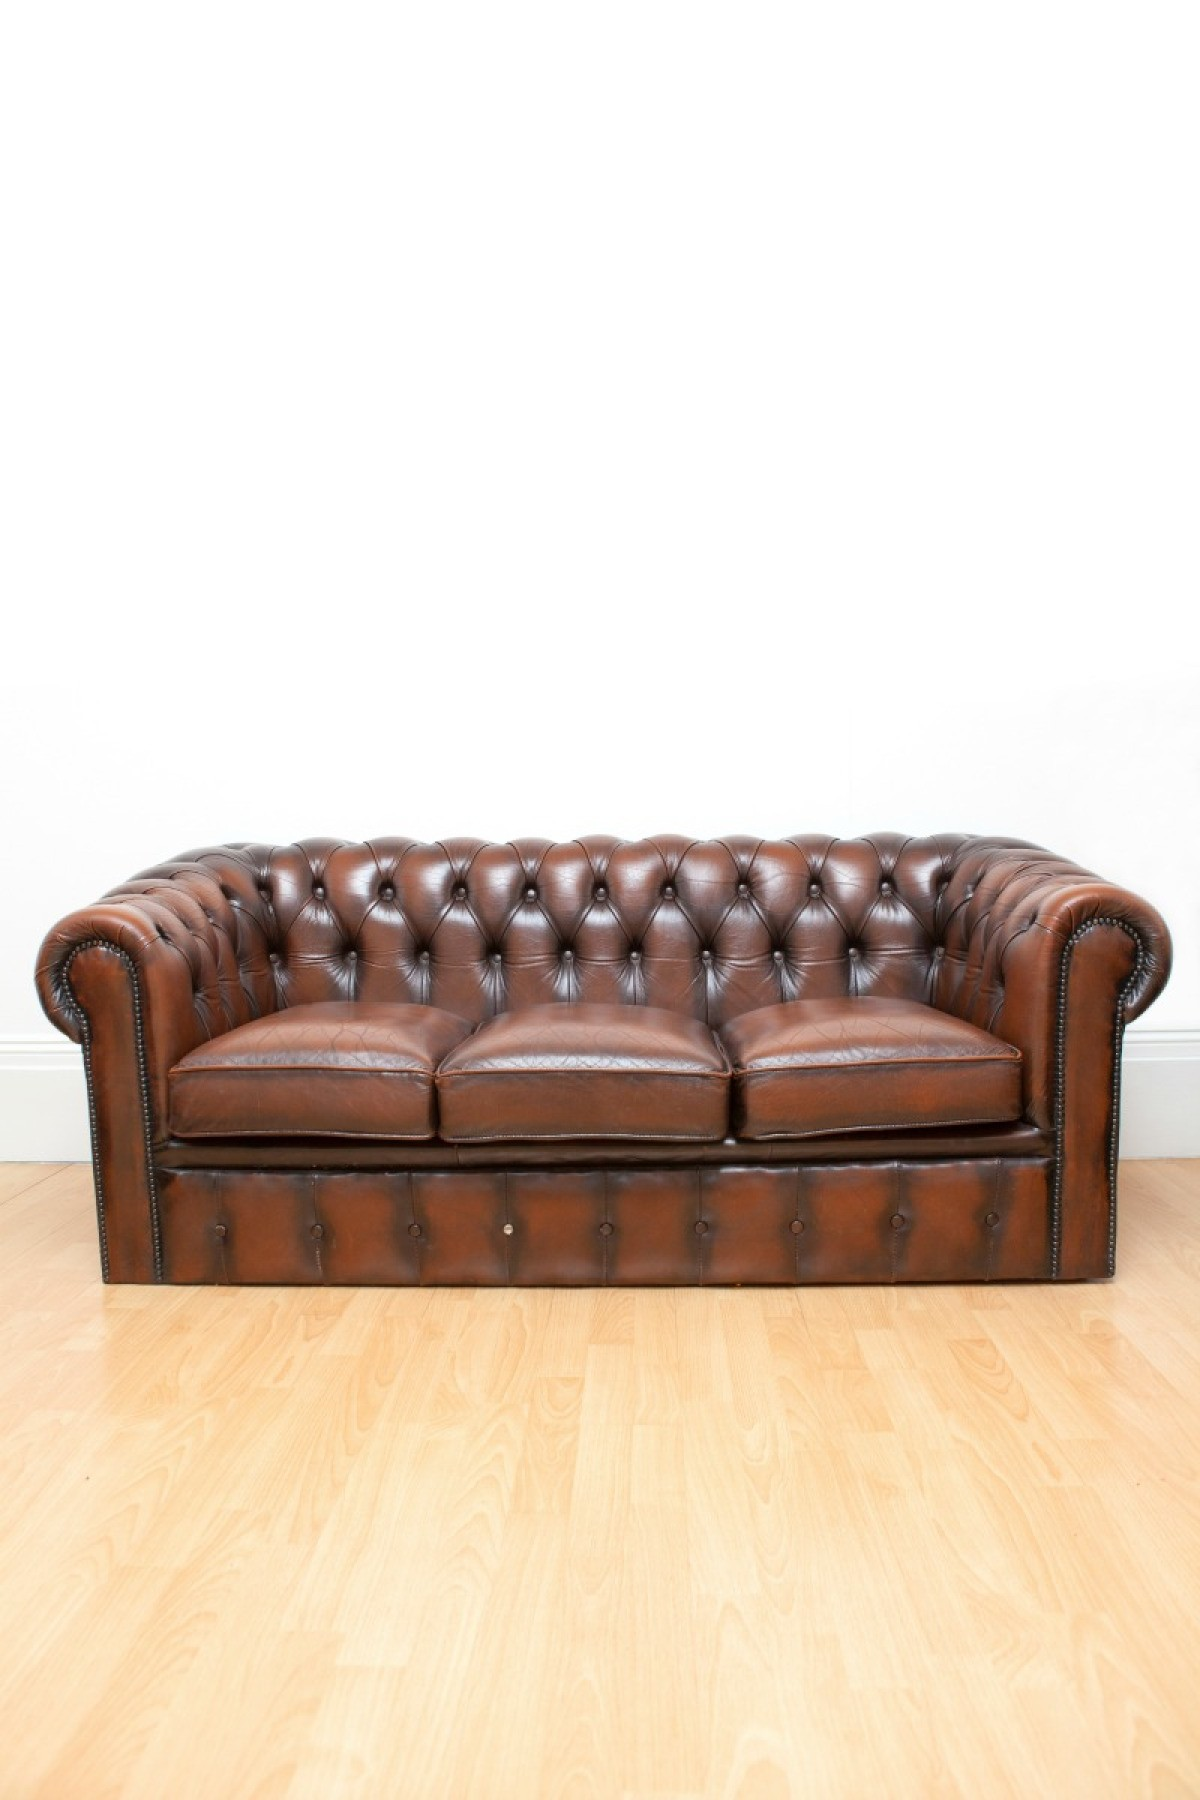 Choosing the best covering for your living room furniture can help make it last longer and make maintenance easy this guide is about buying a leather sofa